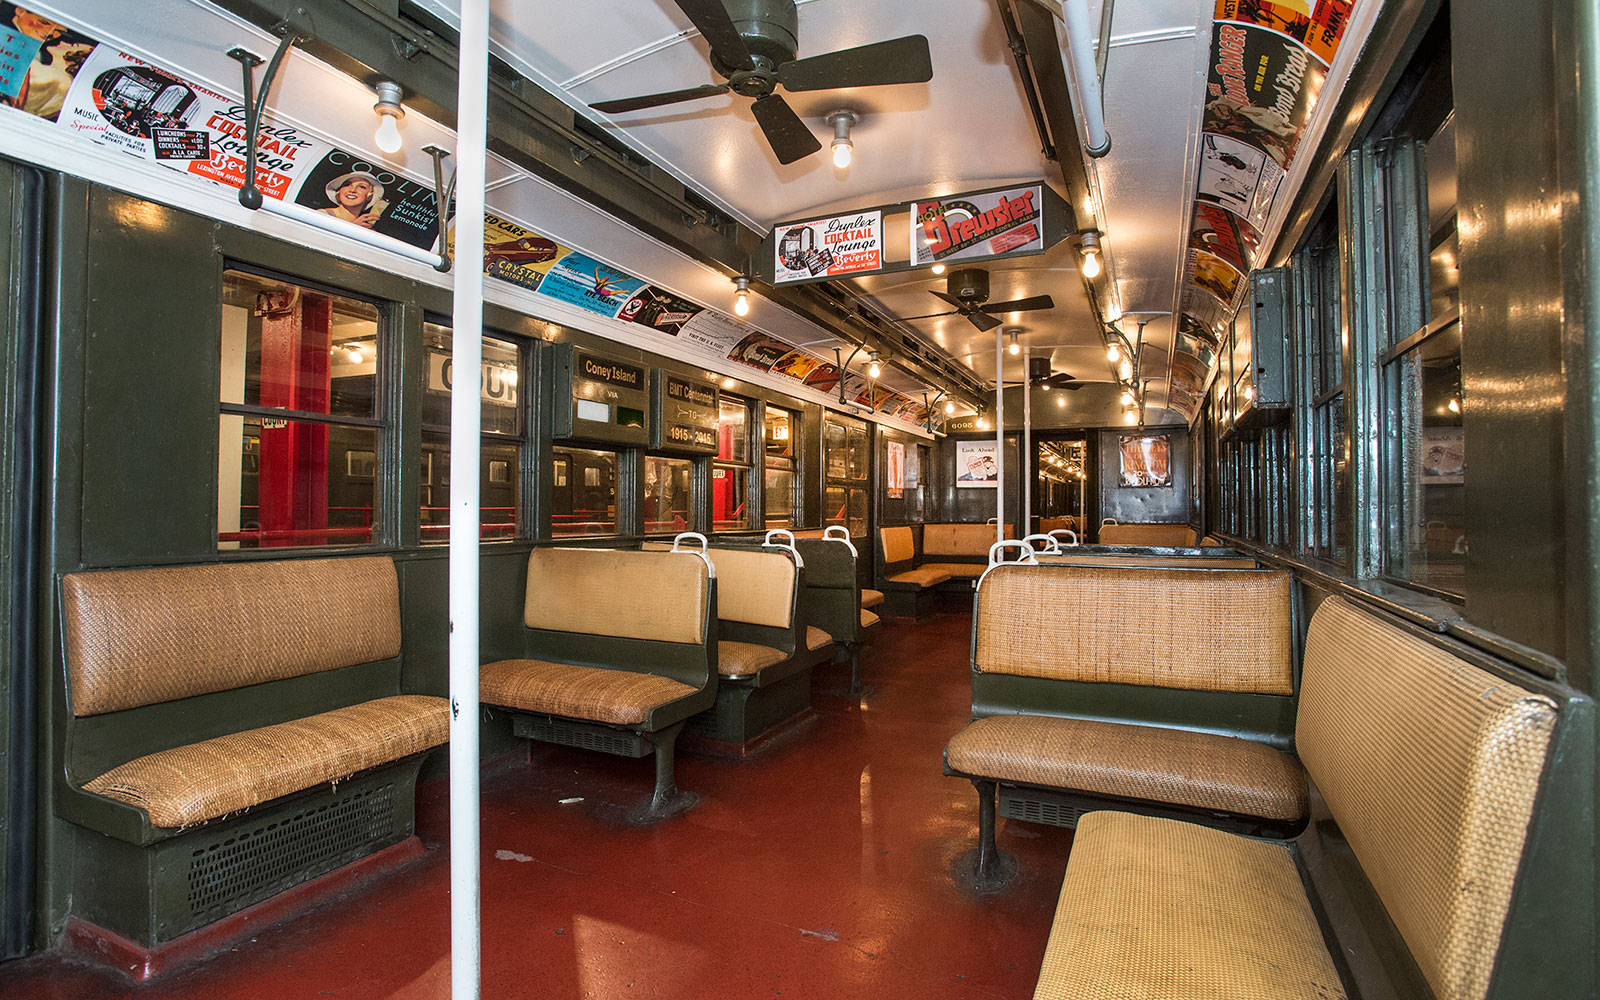 NYC's Gorgeous Old Trains are Back for the Weekend